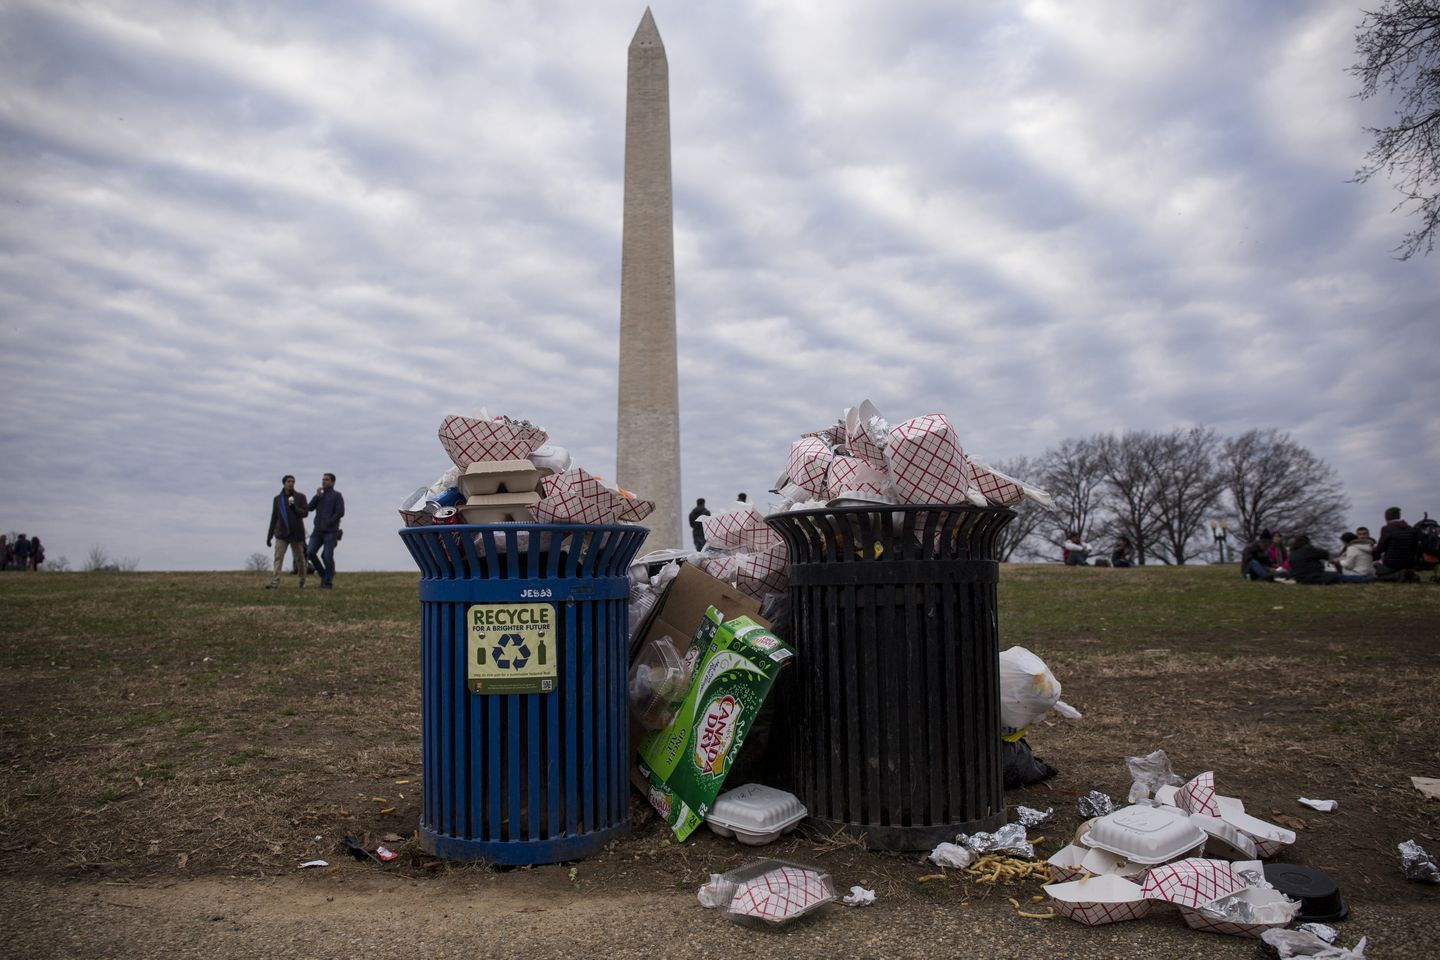 Uncollected garbage stood near the Washington Monument on the National Mall in Washington, D.C.